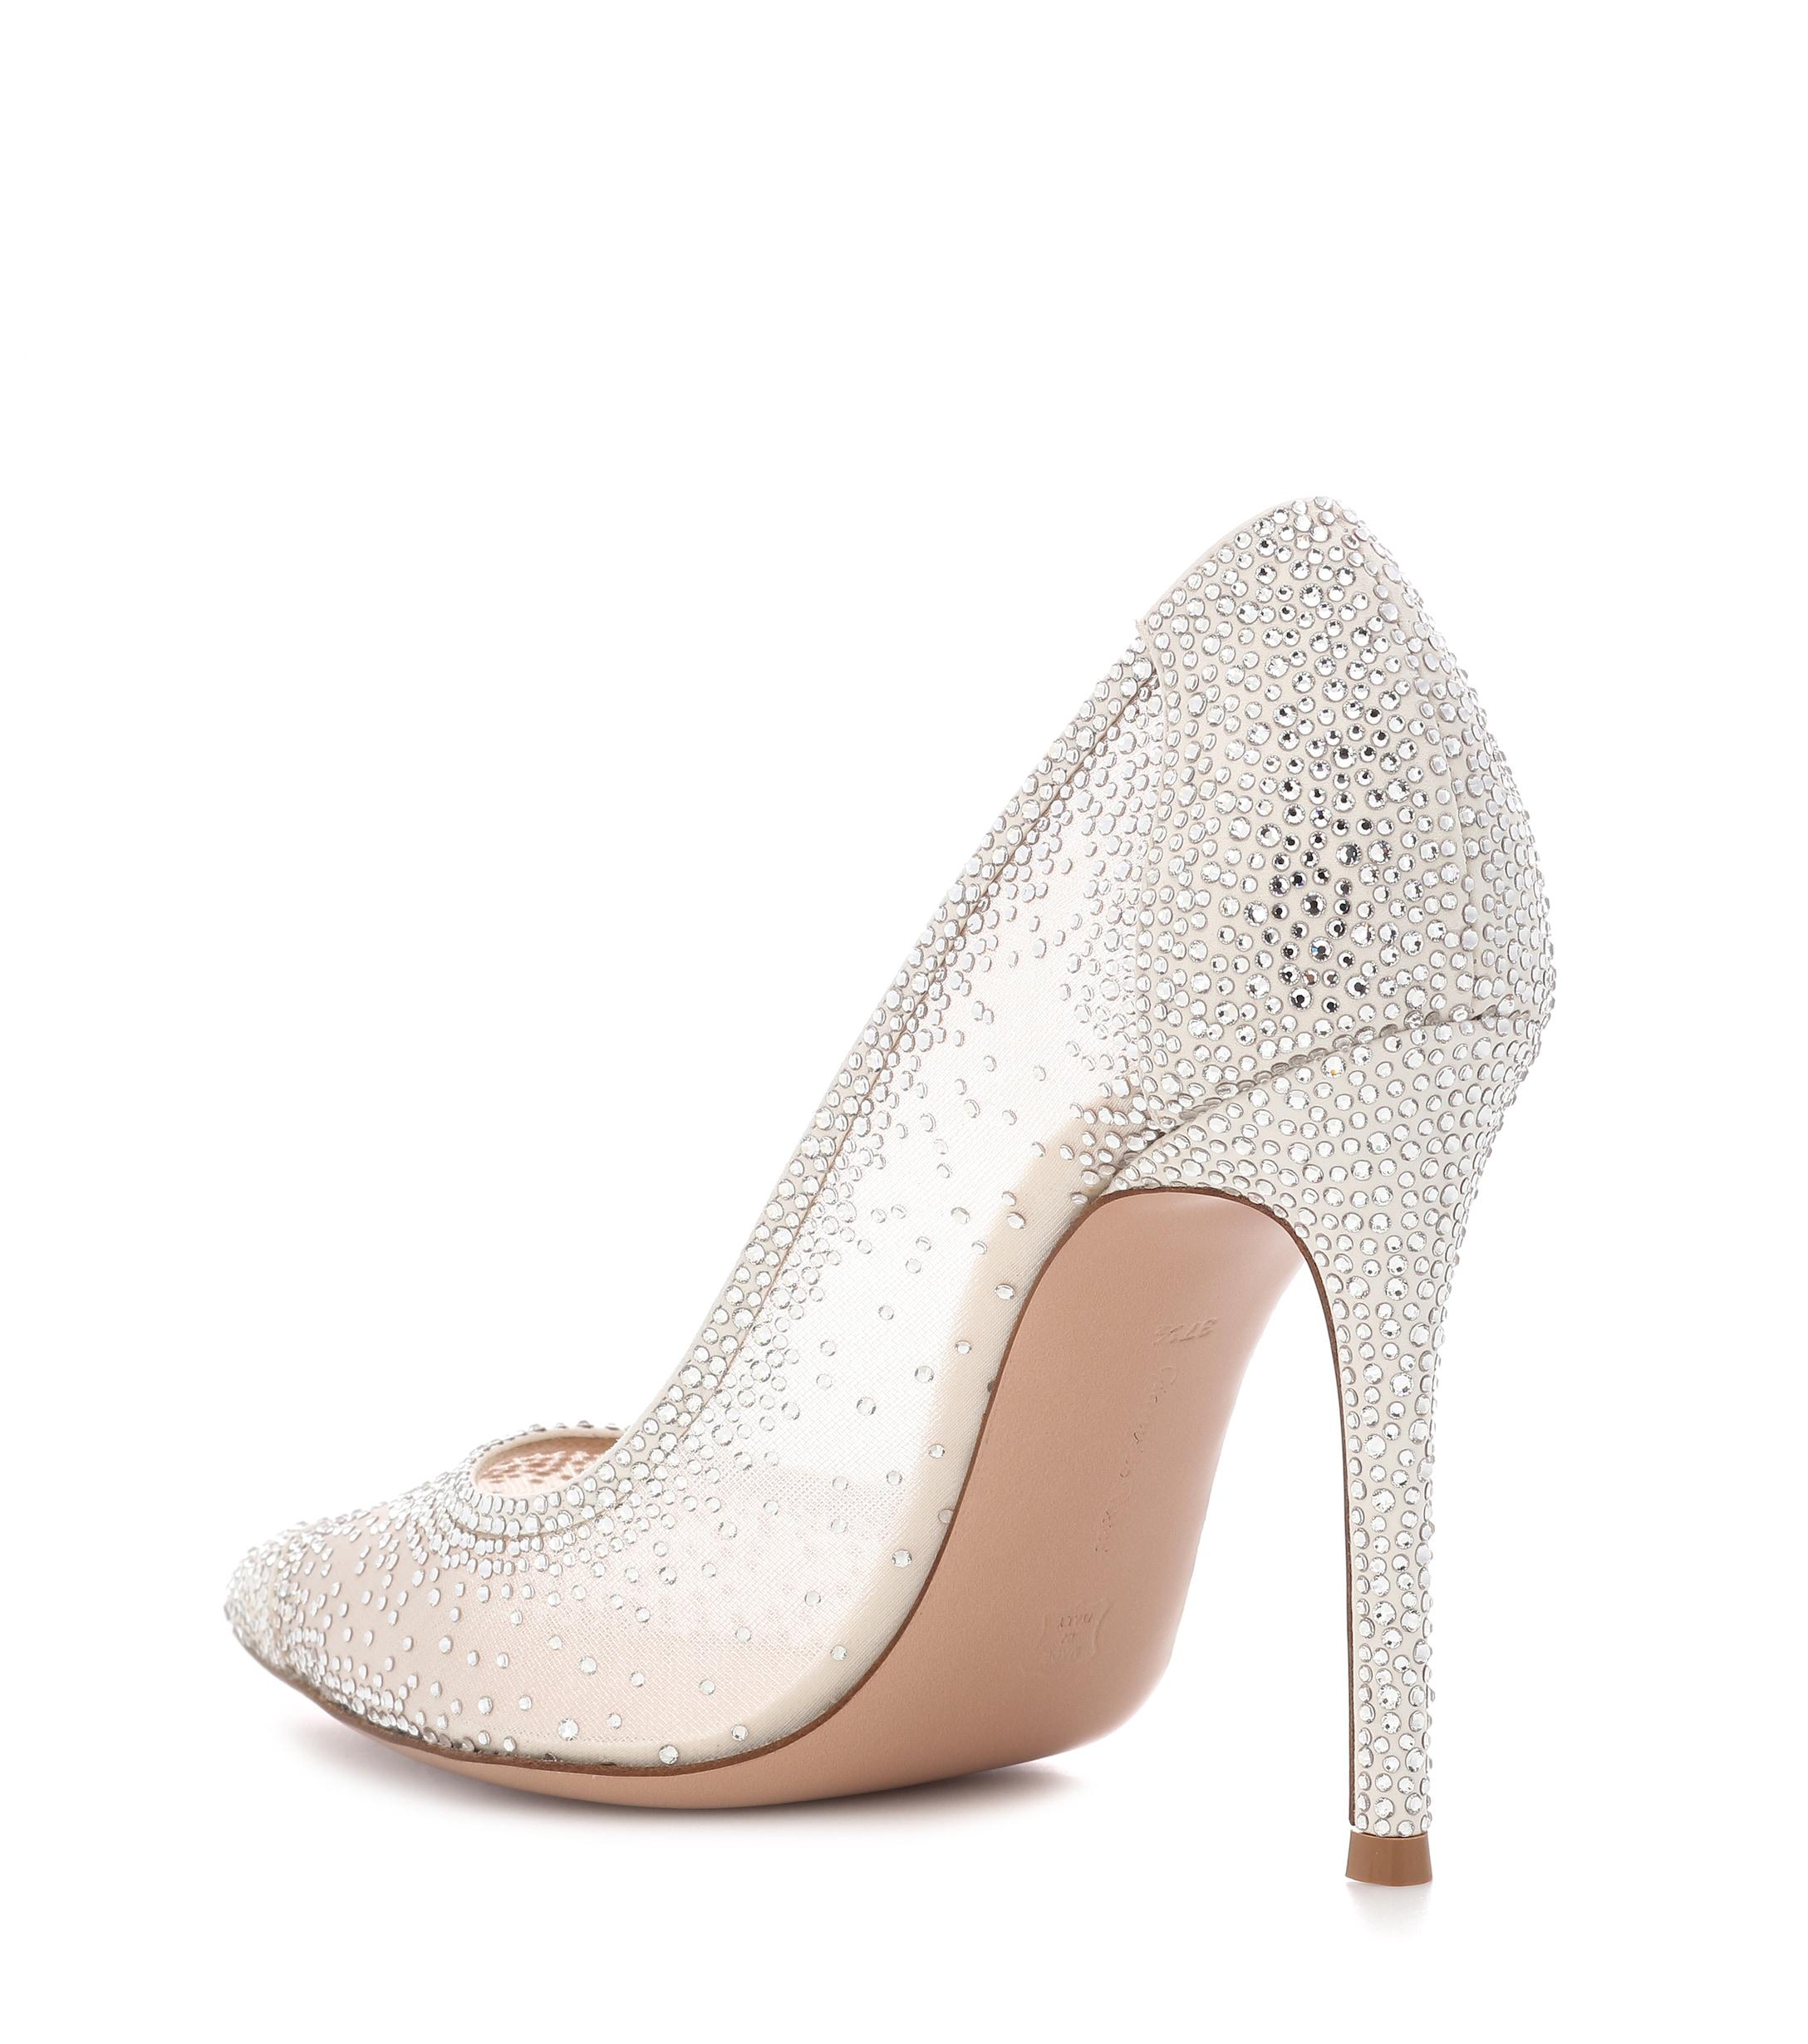 7f4f6b9cab34 Gianvito Rossi - Multicolor Rania Crystal-embellished Pumps - Lyst. View  fullscreen